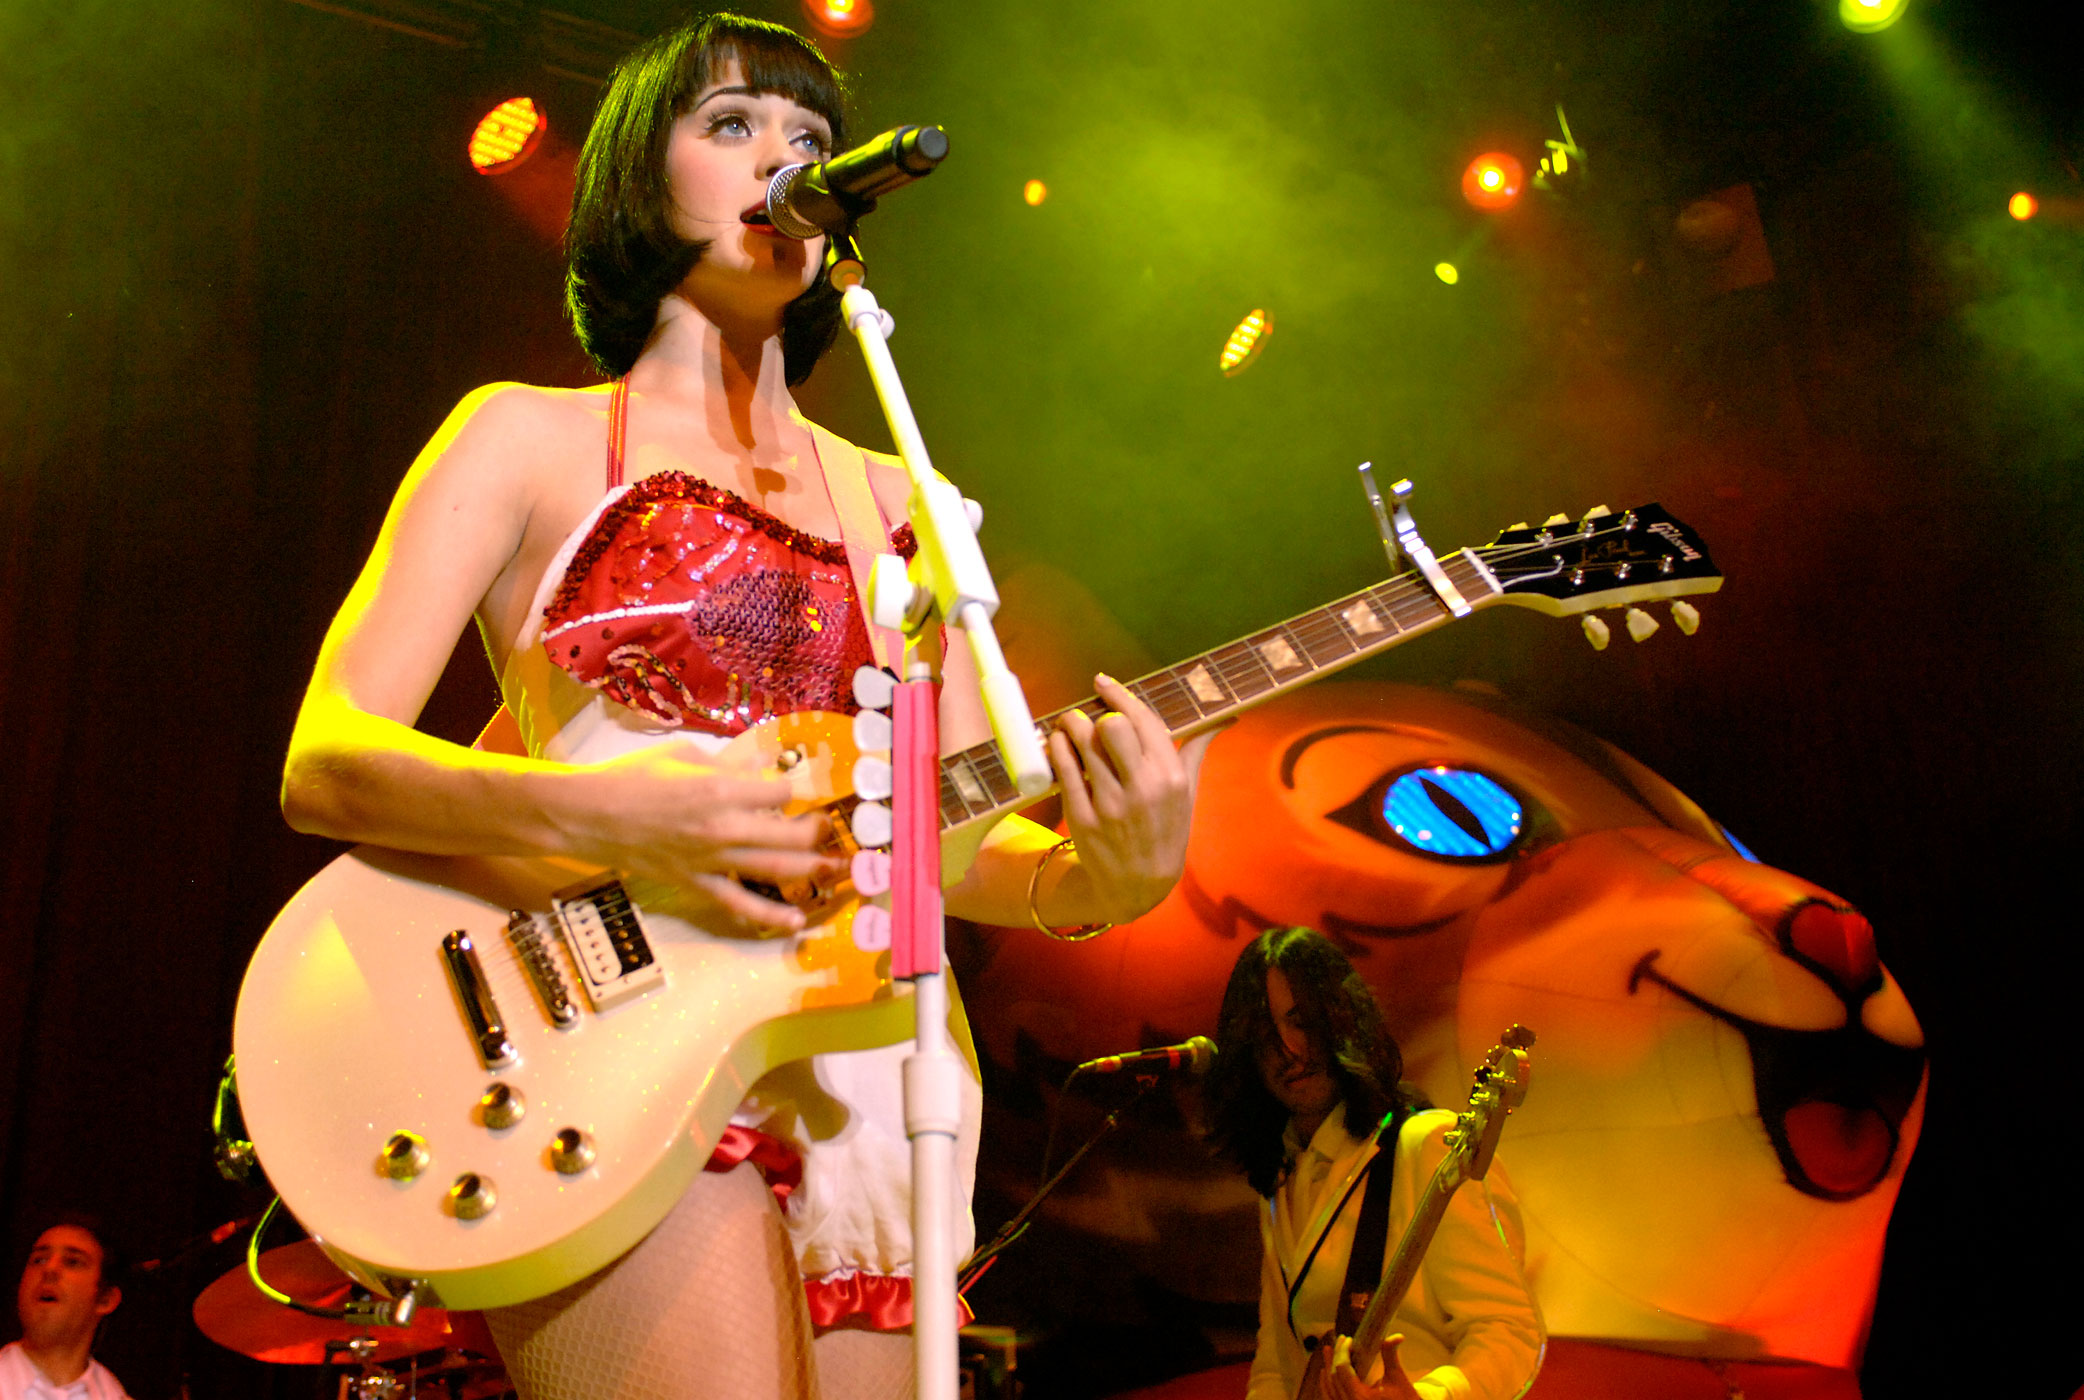 Katy Perry performs part of The Hello Katy Tour at The Fillmore in San Francisco, California, Jan 28, 2009.